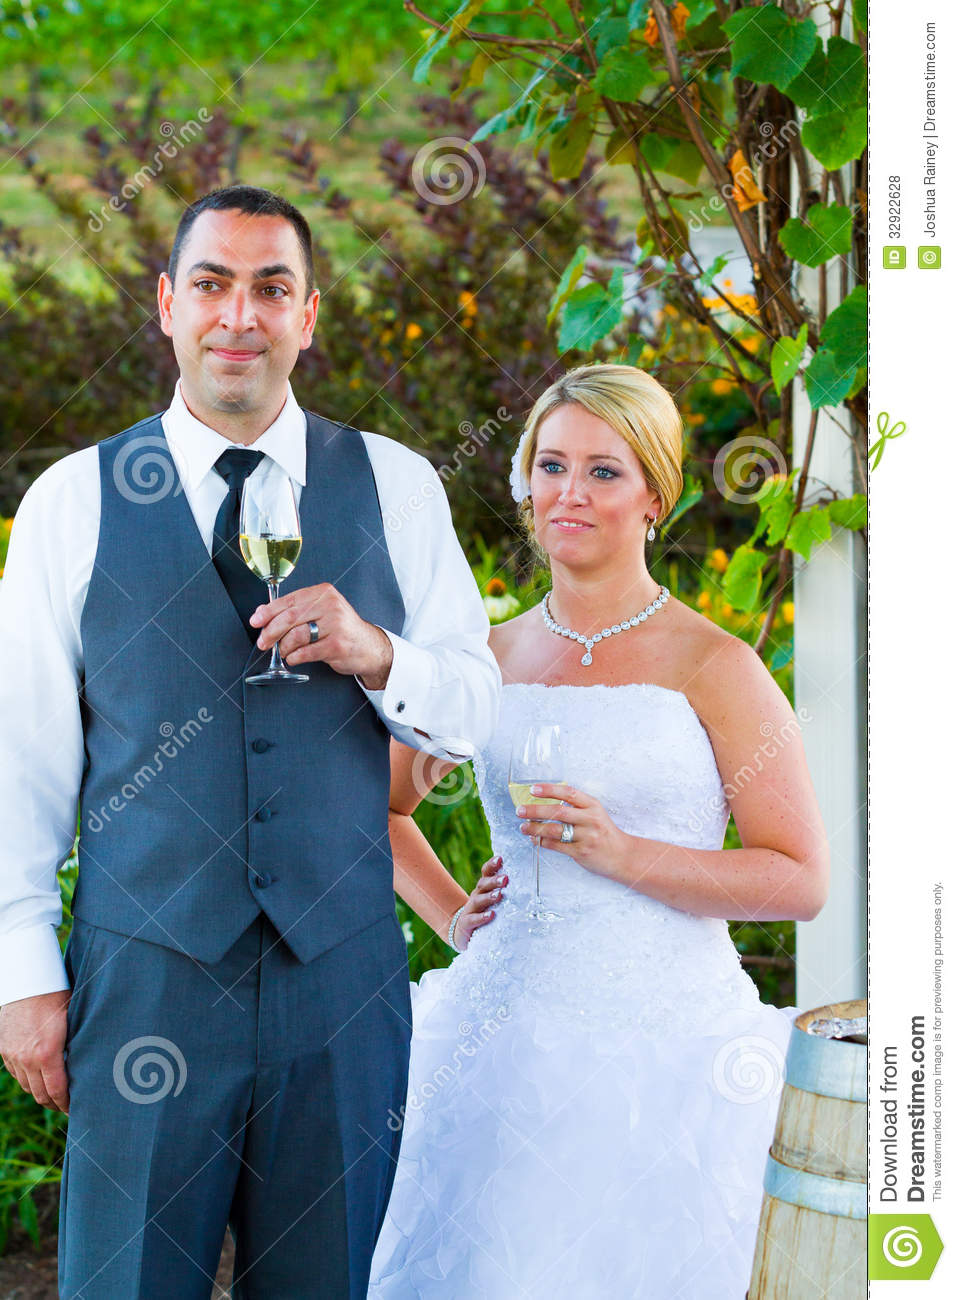 Bride and groom wedding toasts stock photo image 32922628 bride and groom wedding toasts junglespirit Image collections